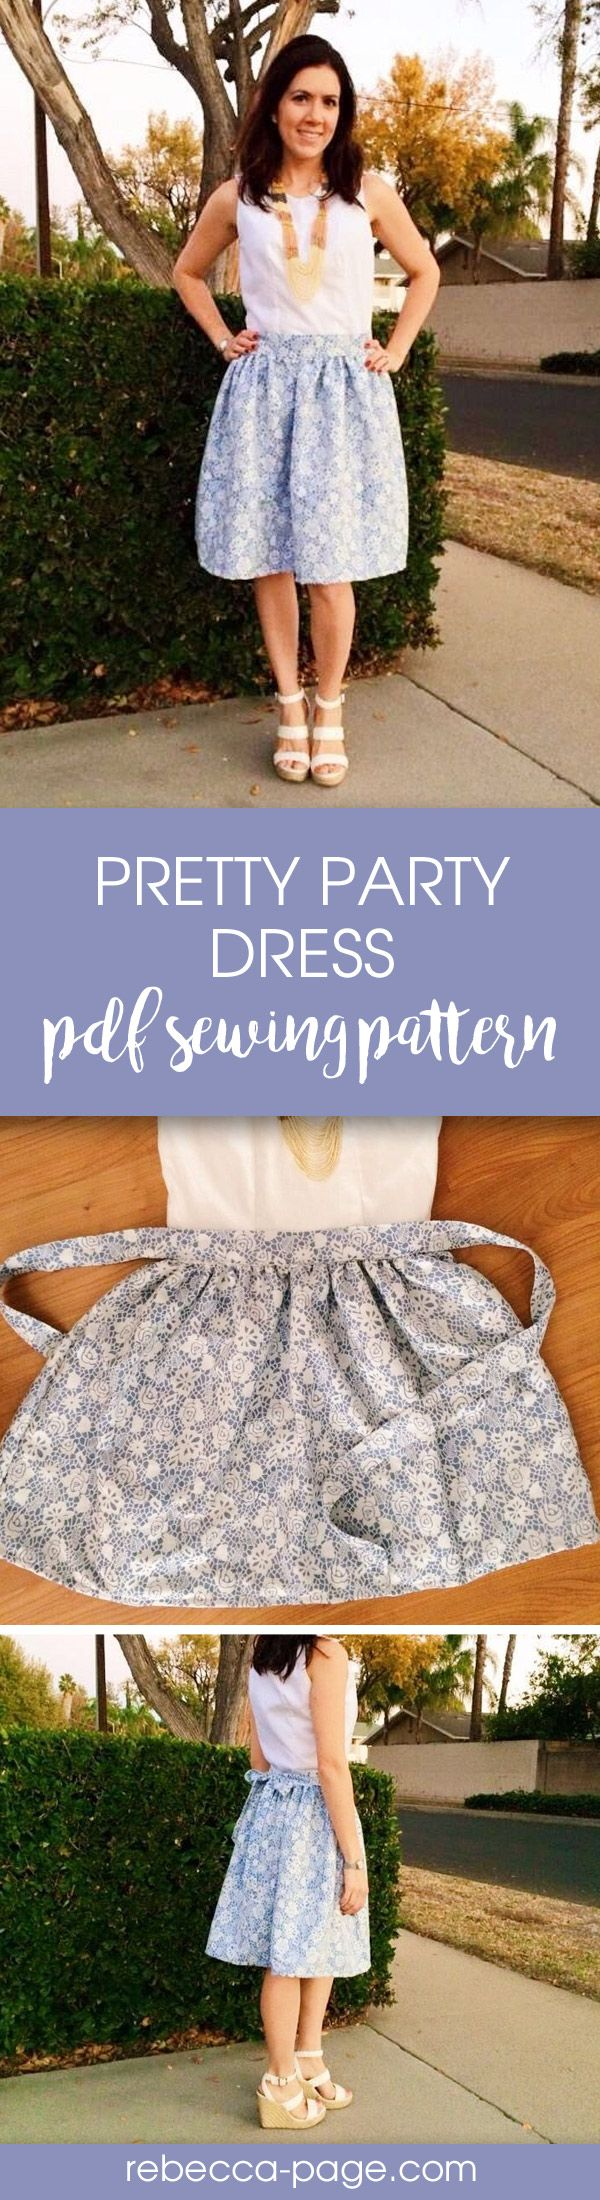 PDF sewing pattern - Perfect for all those holiday parties coming up, the Ladies Pretty Party Dress PDF Sewing Pattern has lots of options so you can dress it up or down! Pattern includes sizes XXS to 5XL.